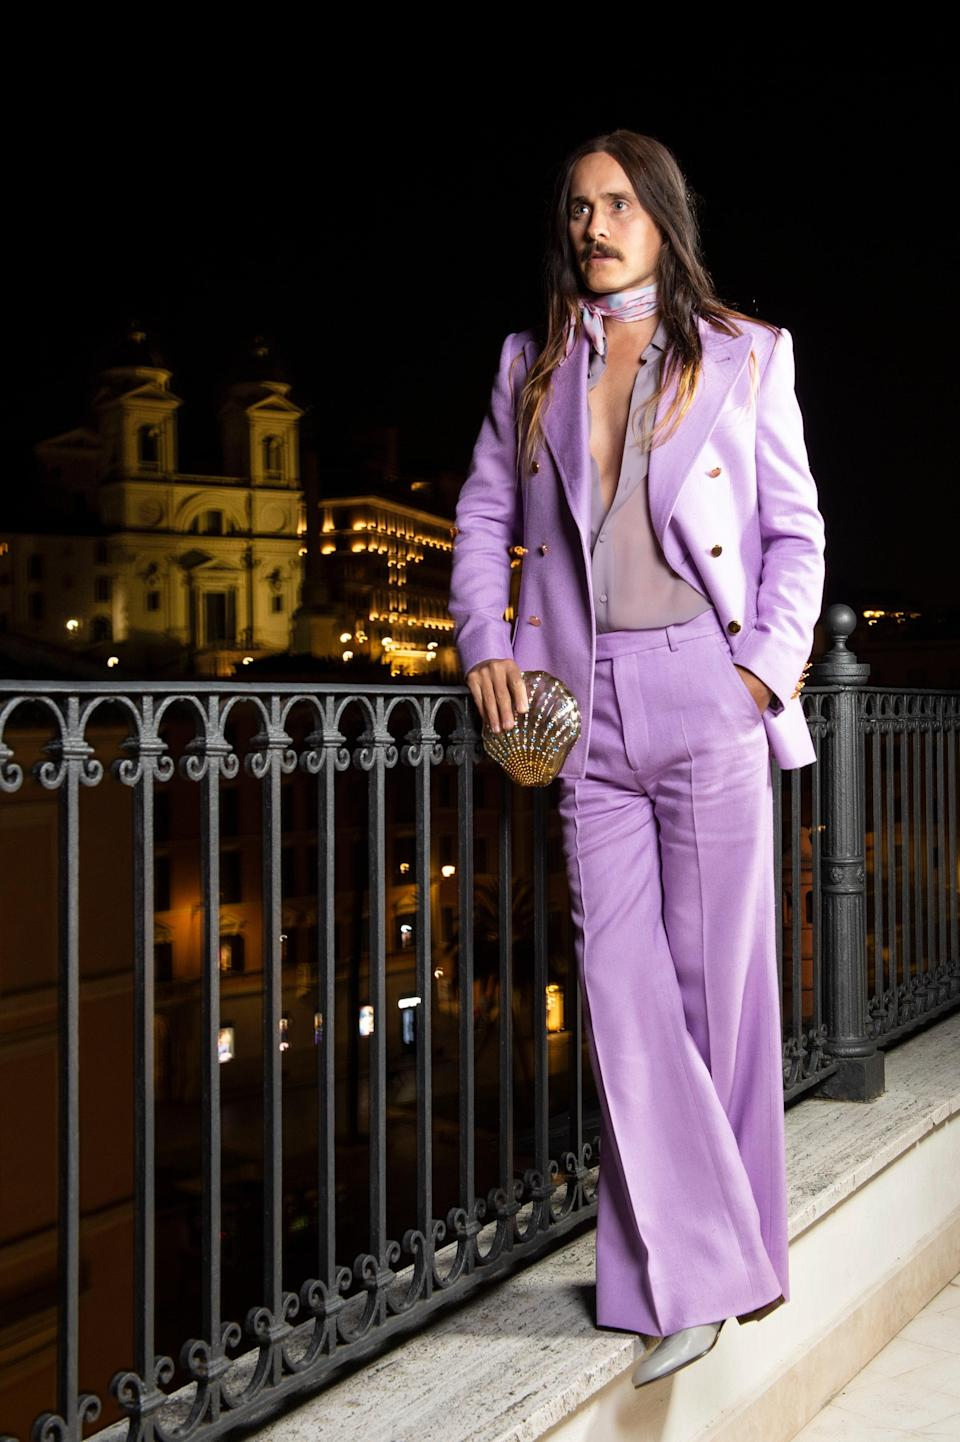 Leto's lately been seen in Milan, palling around with Gucci designer Alessandro Michele and acting in the forthcoming <em>House of Gucci</em>. You expected anything different?